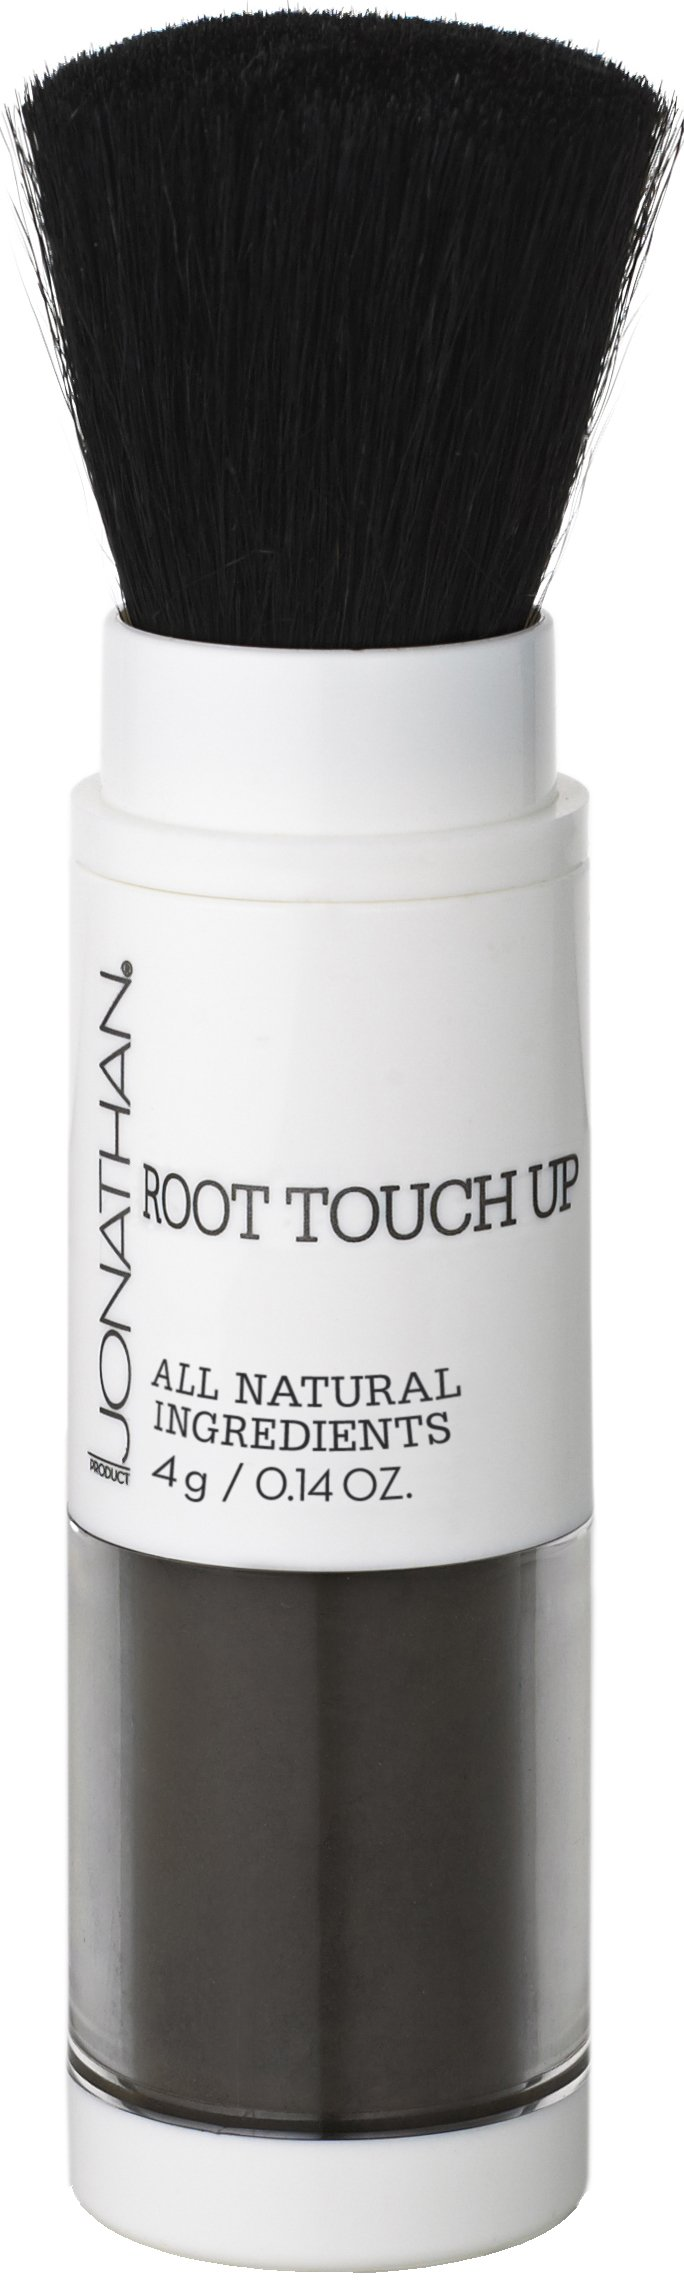 Jonathan Product Root Touch-Up-Black 4g/ 0.14 oz